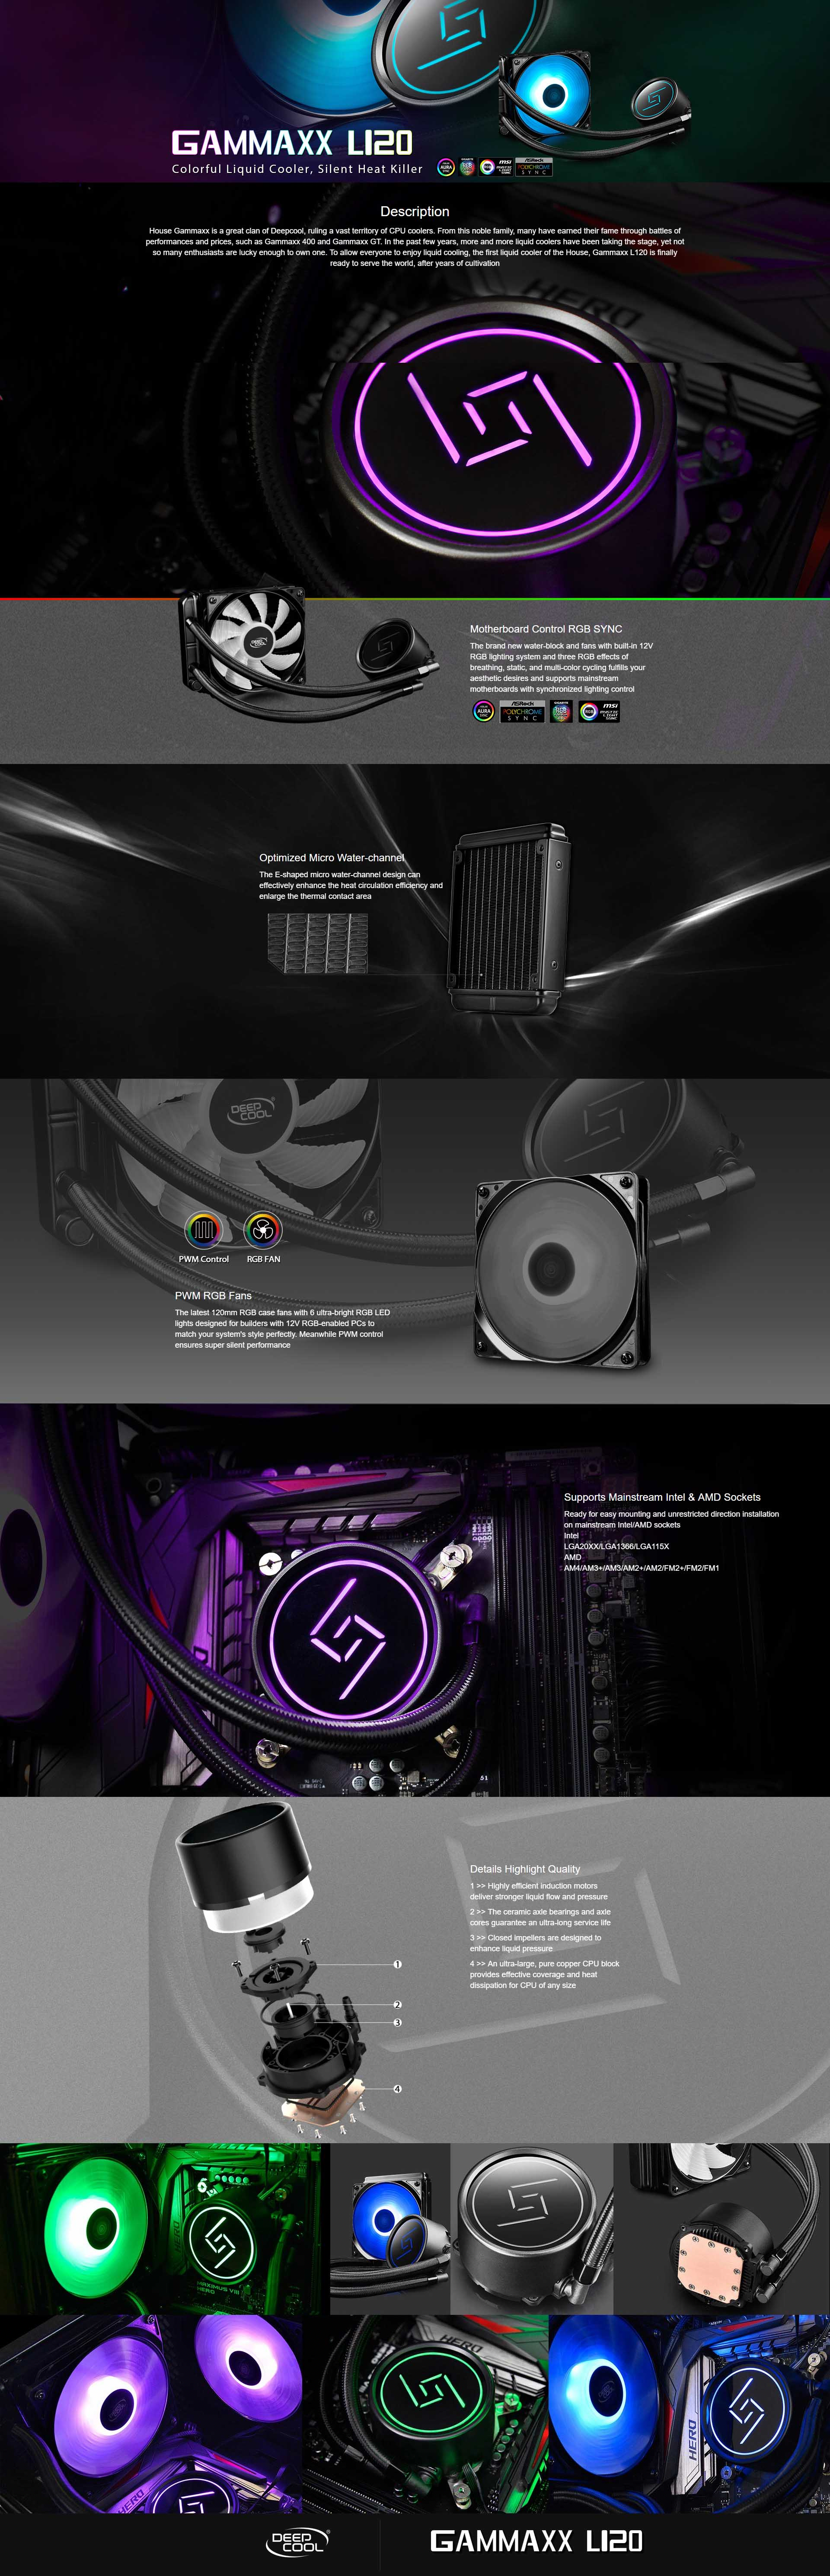 A large marketing image providing additional information about the product Deepcool Gammaxx L120 RGB LED AIO Liquid Cooler - Additional alt info not provided